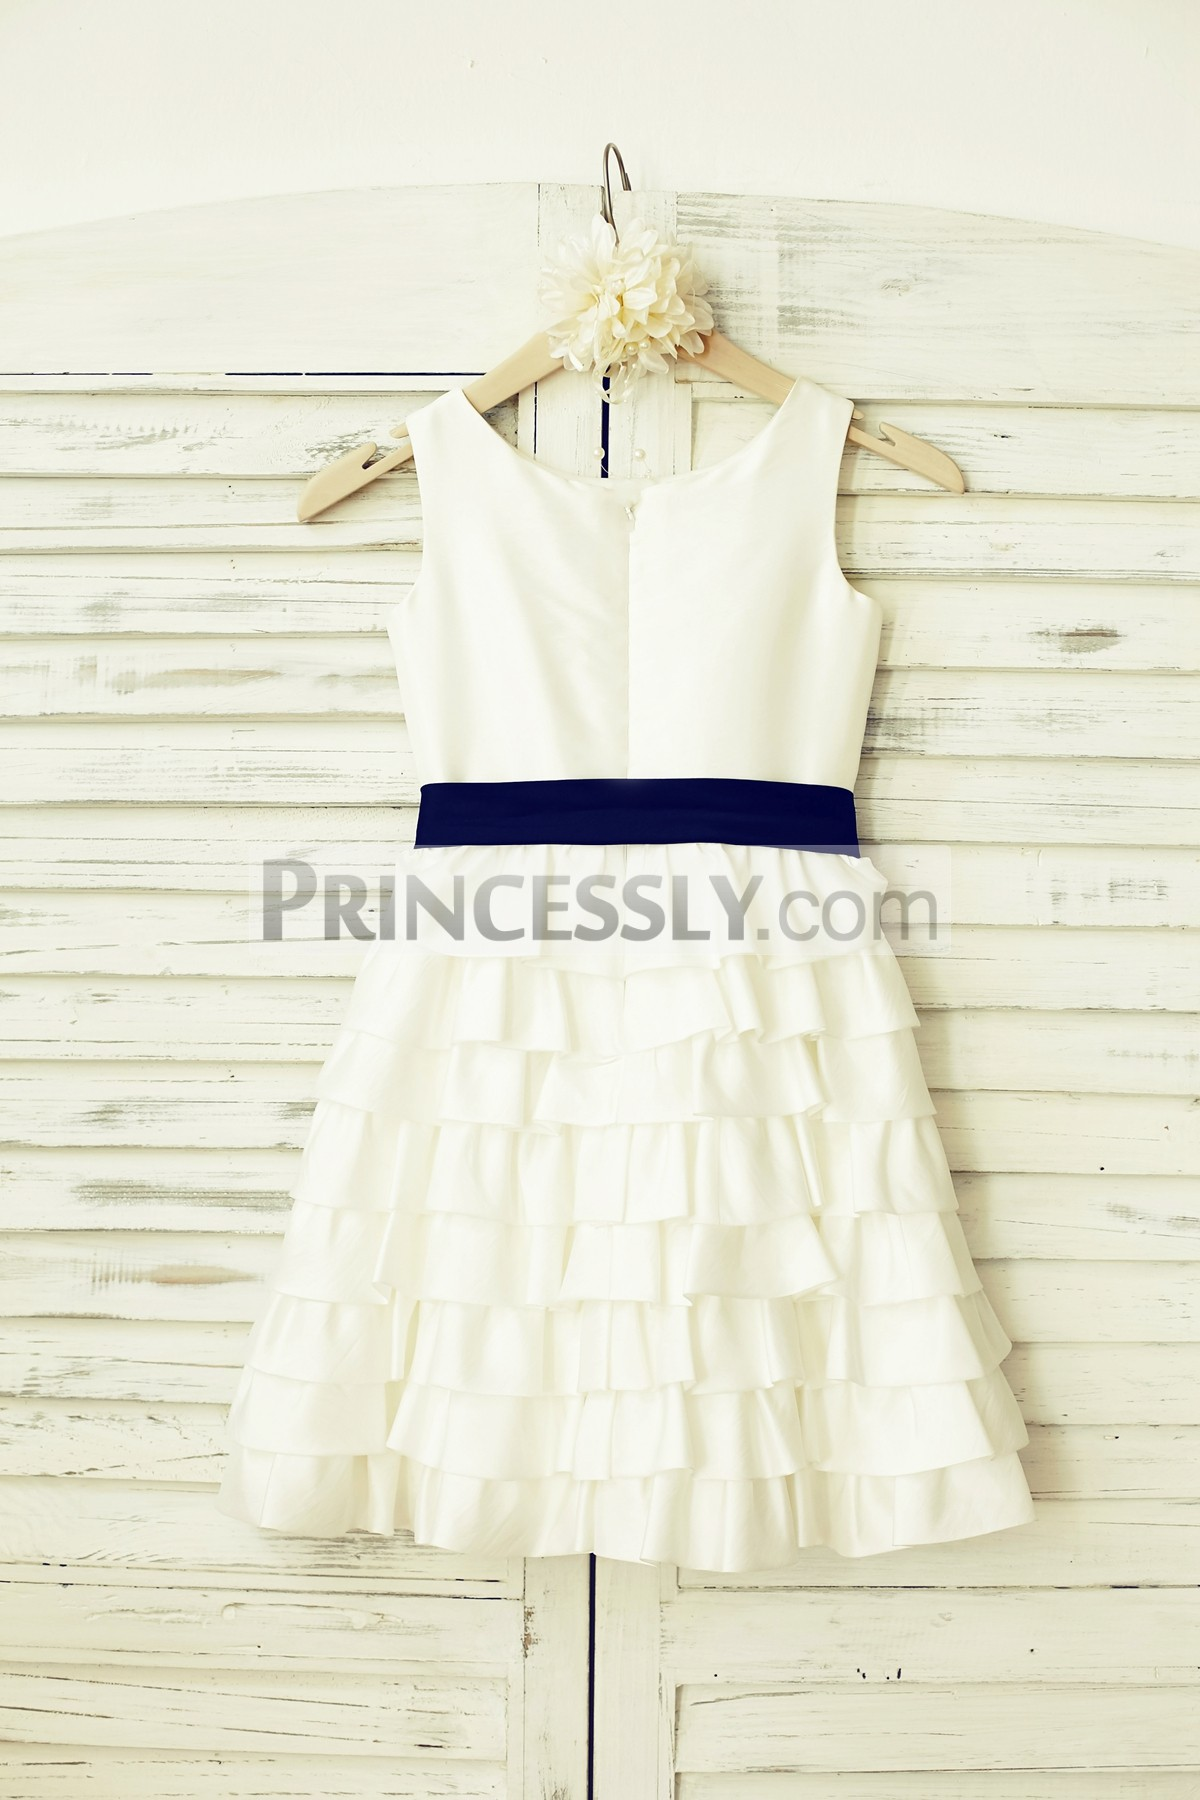 Scoop neck sleeveless ivory taffeta cupcake wedding baby girl dress